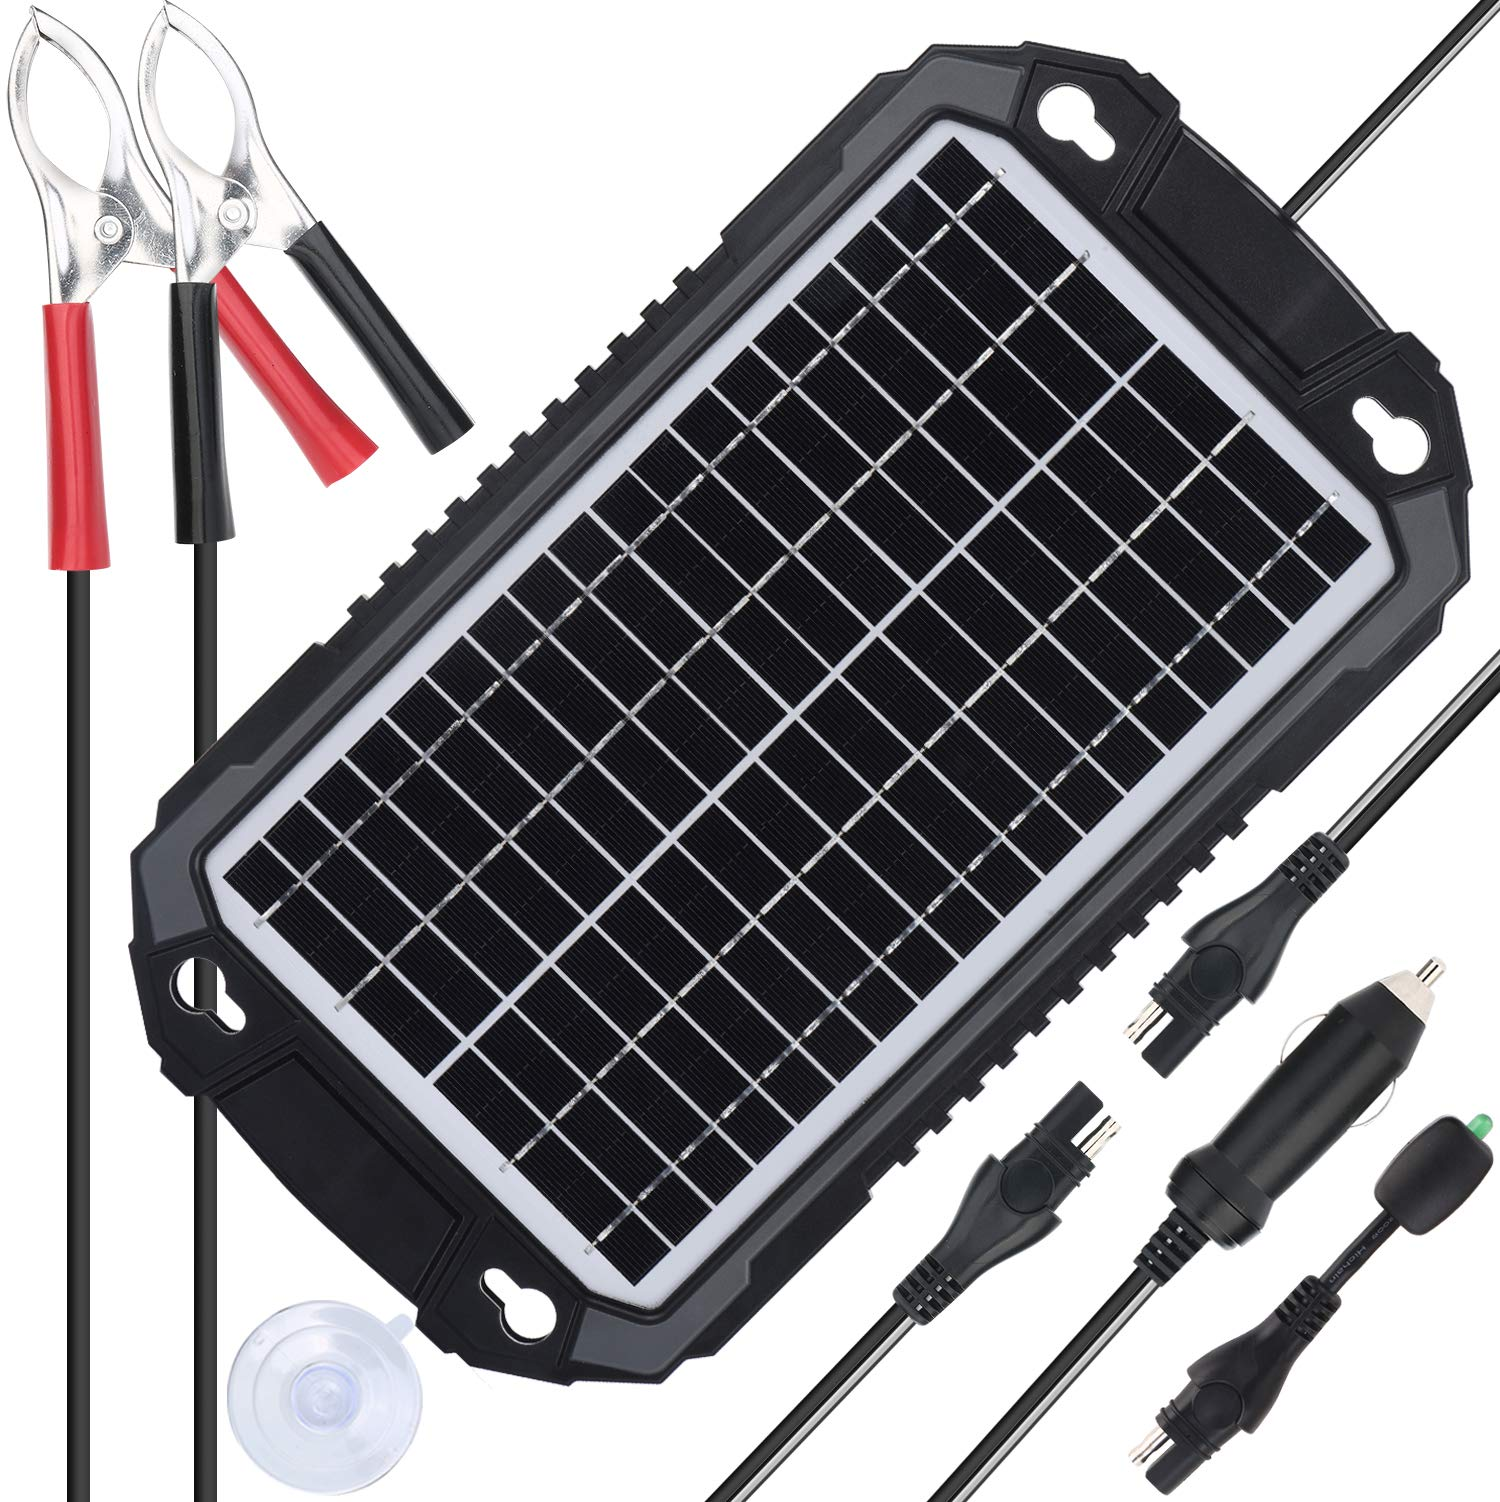 SUNER POWER 12V Solar Car Battery Charger & Maintainer - Waterproof 8W Solar Panel Trickle Charging Kit for Automotive, Motorcycle, Boat, Marine, RV, Trailer, Powersports, Snowmobile, etc. by SUNER POWER